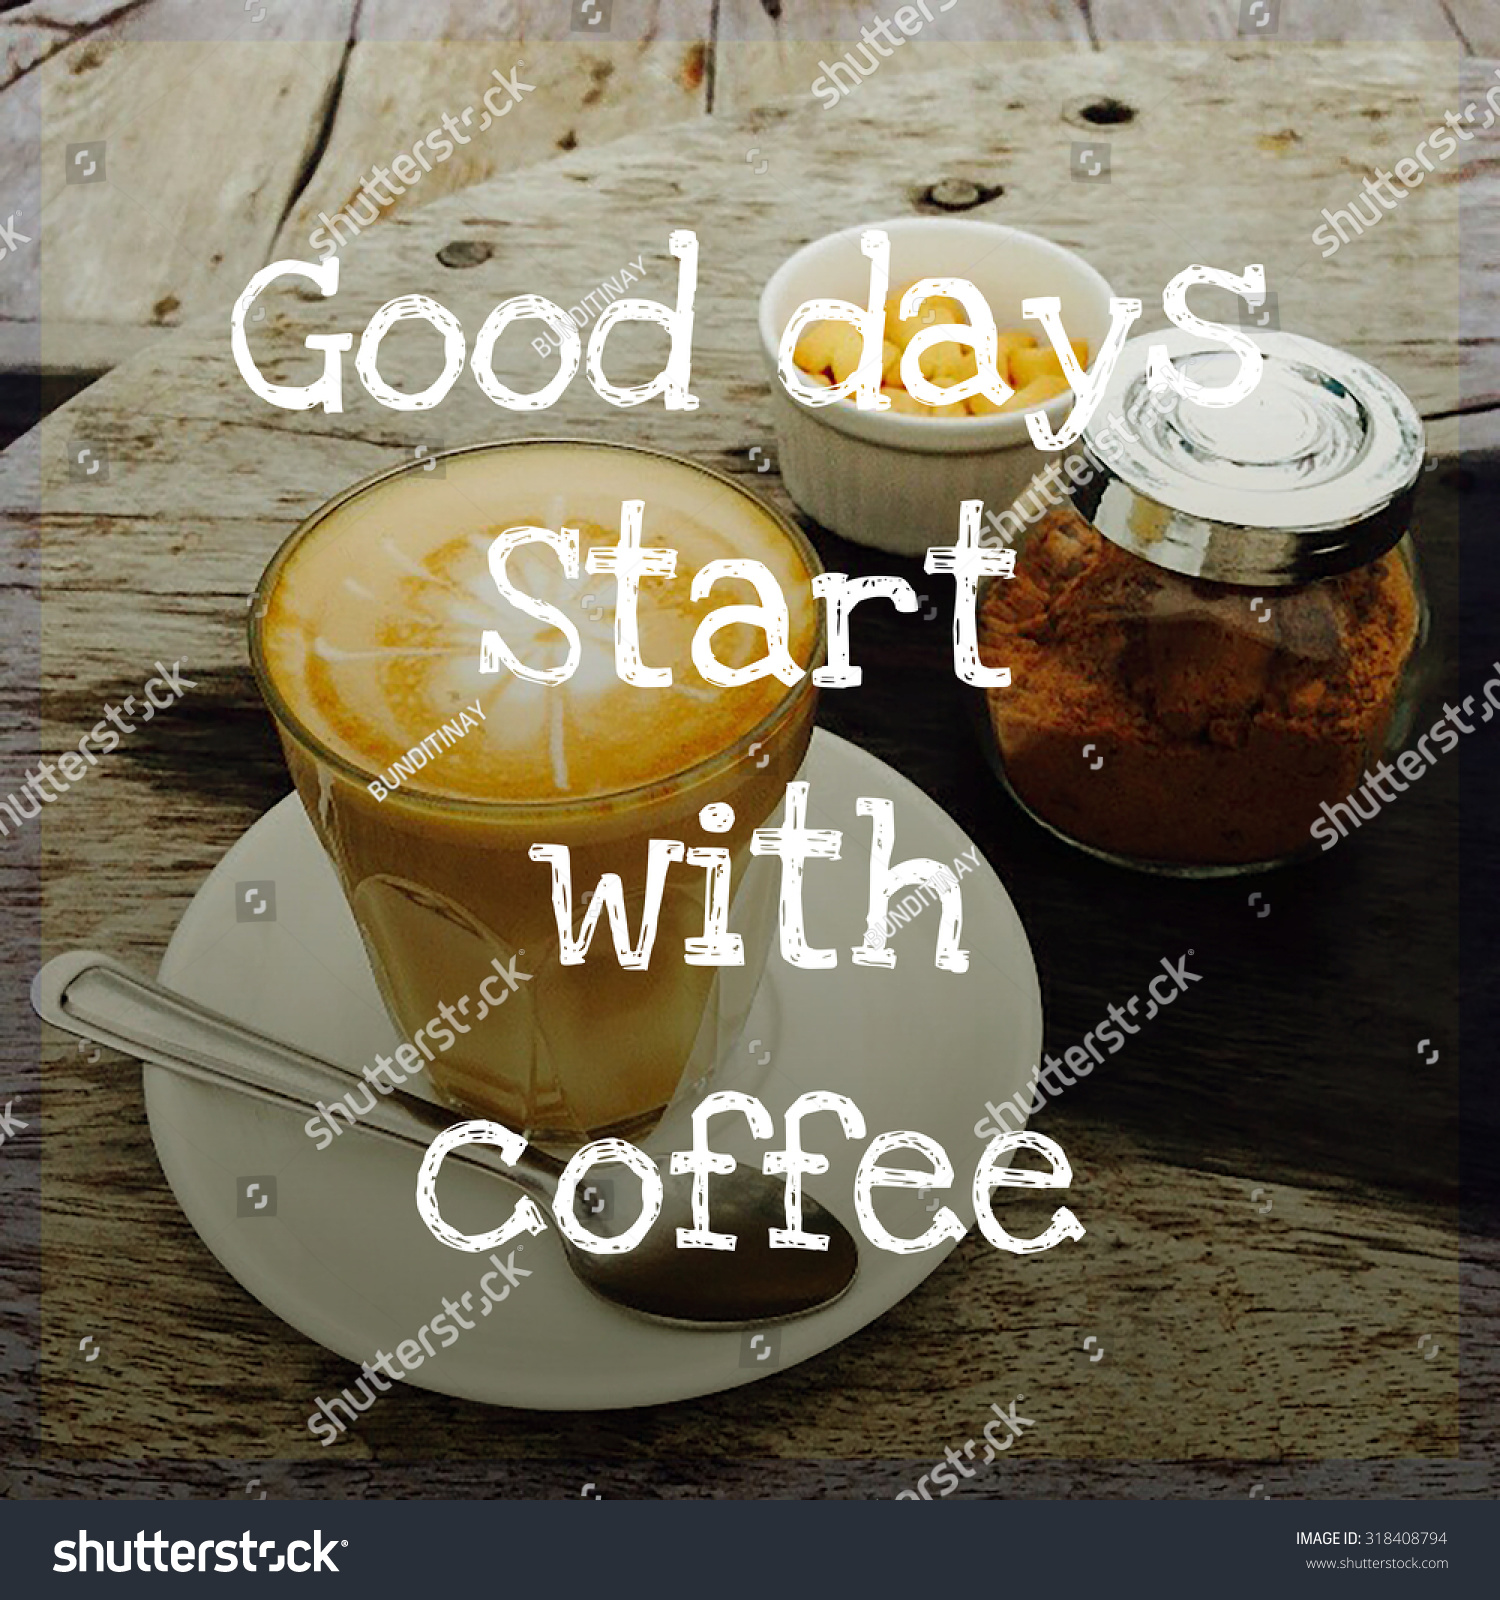 Inspirational Quote On Blurred Coffee Cup Background With Vintage Filter